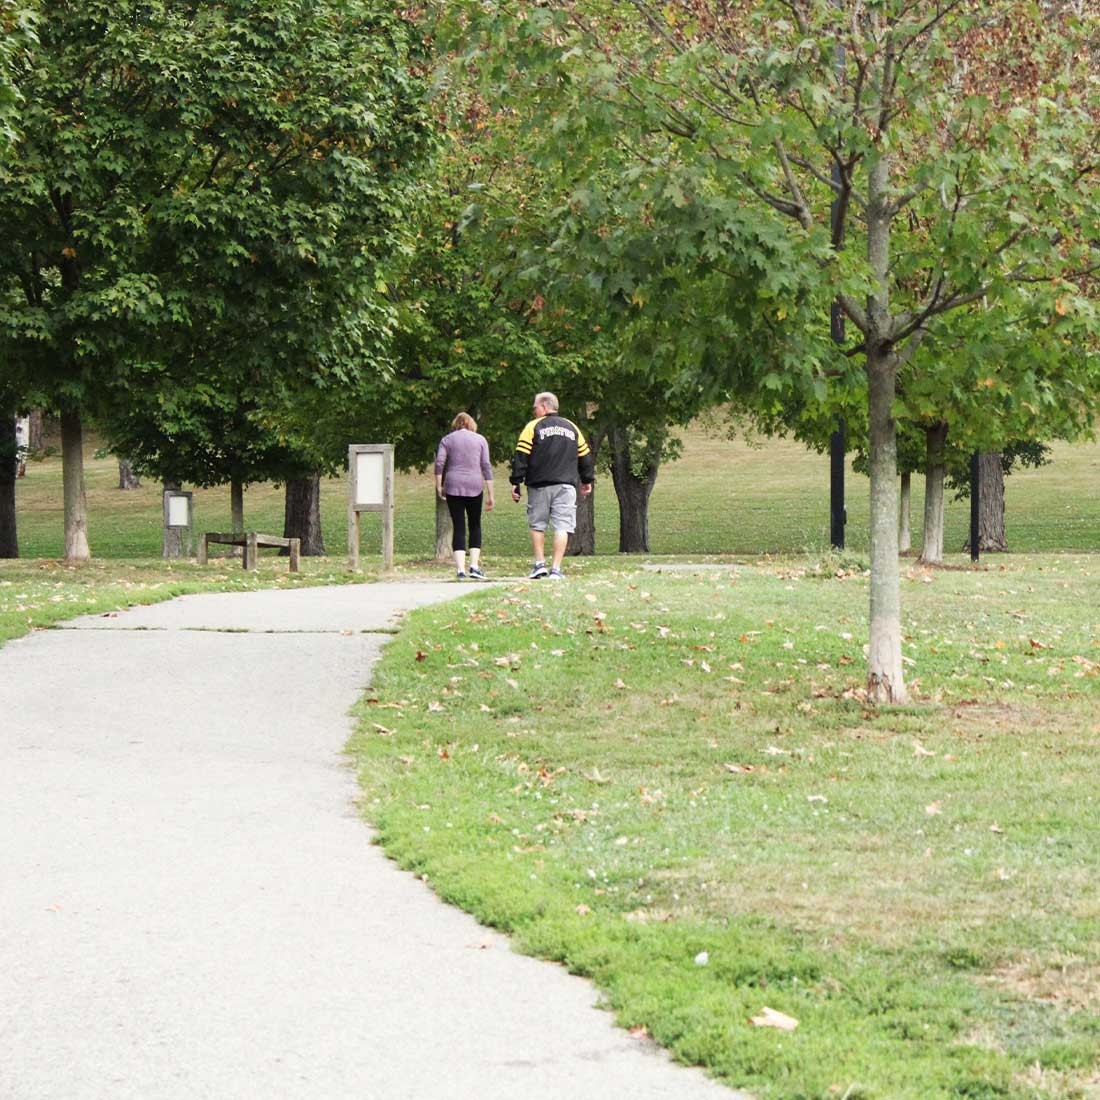 People walking for recreation at South Park